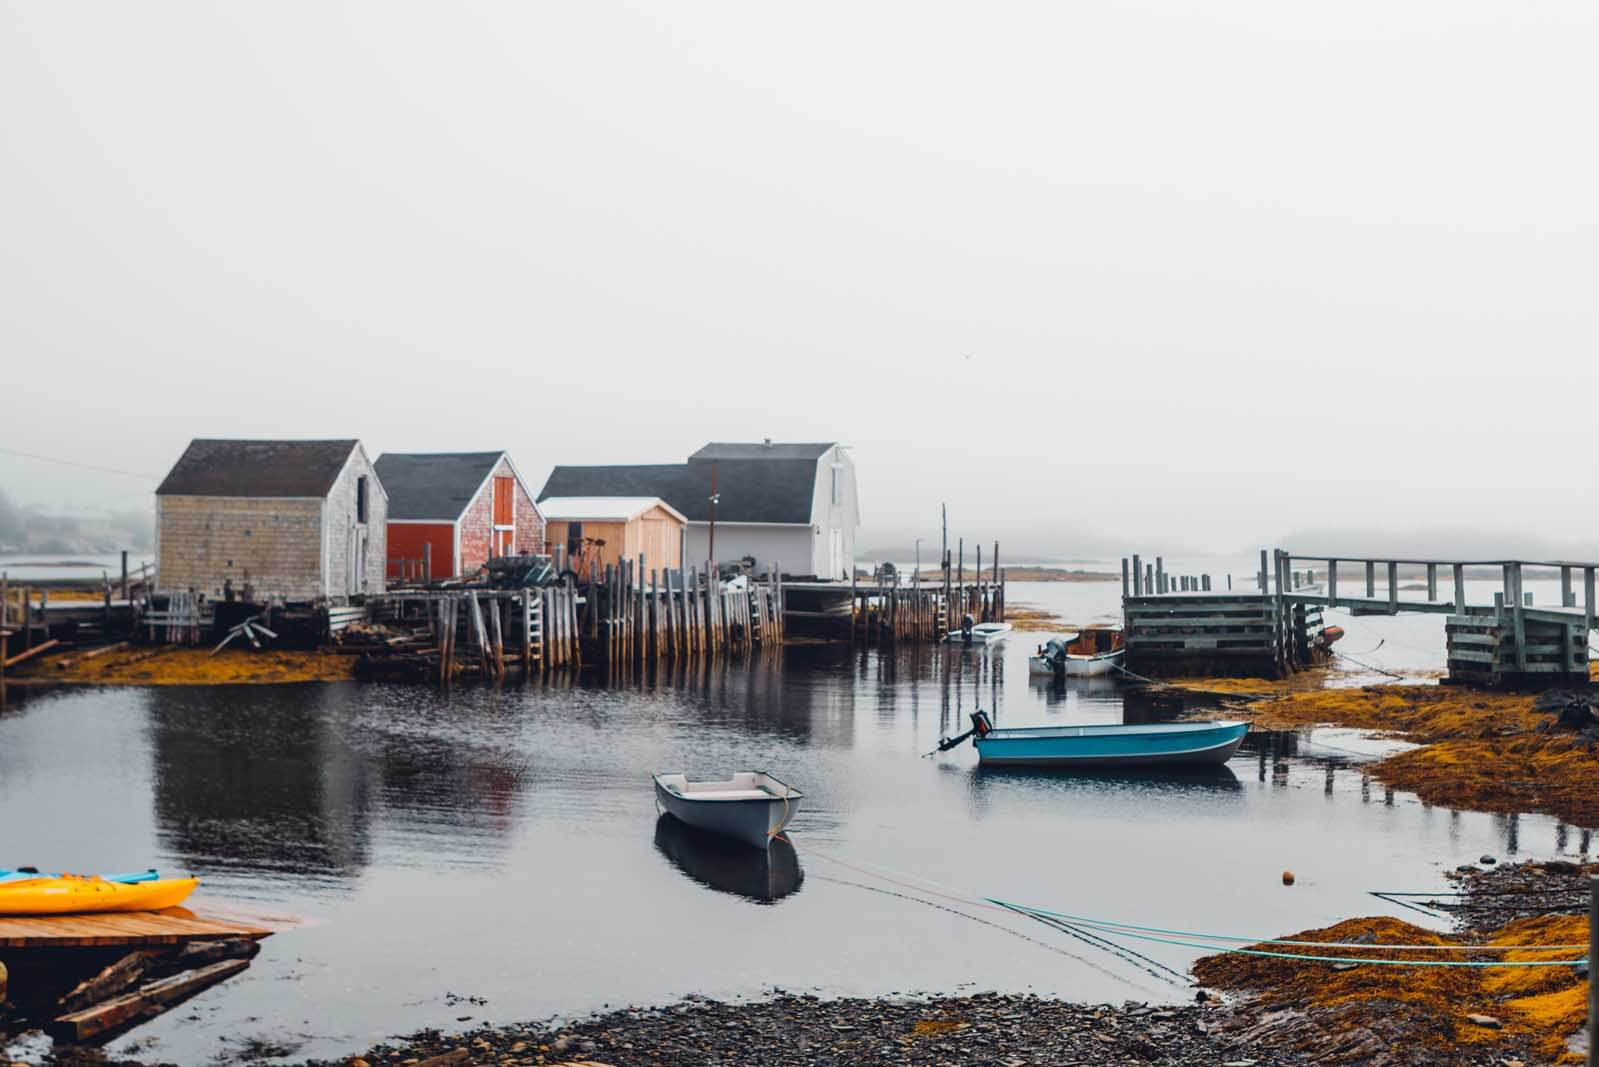 Blue Rocks Fishing Village in Nova Scotia